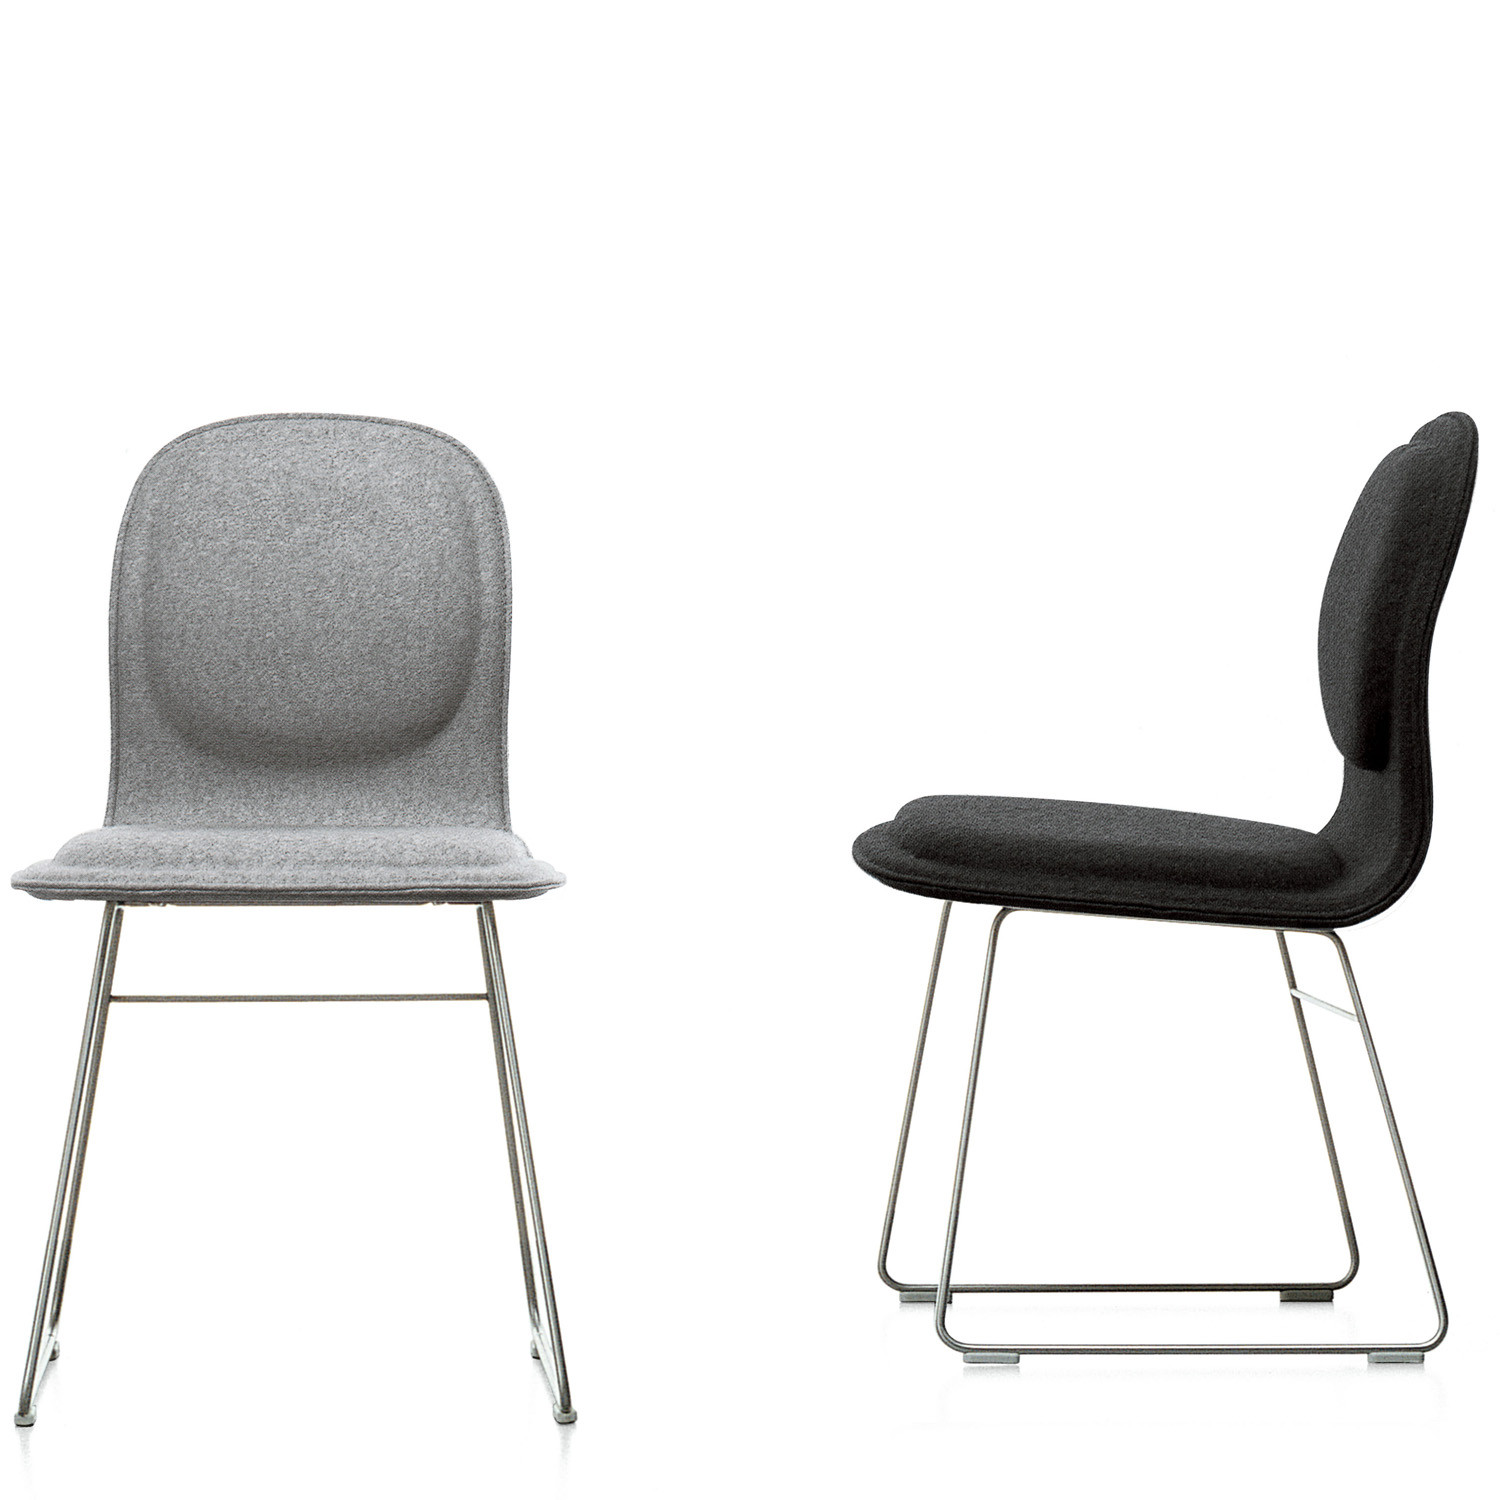 Hi Pad Chair | Soft Pad Seating